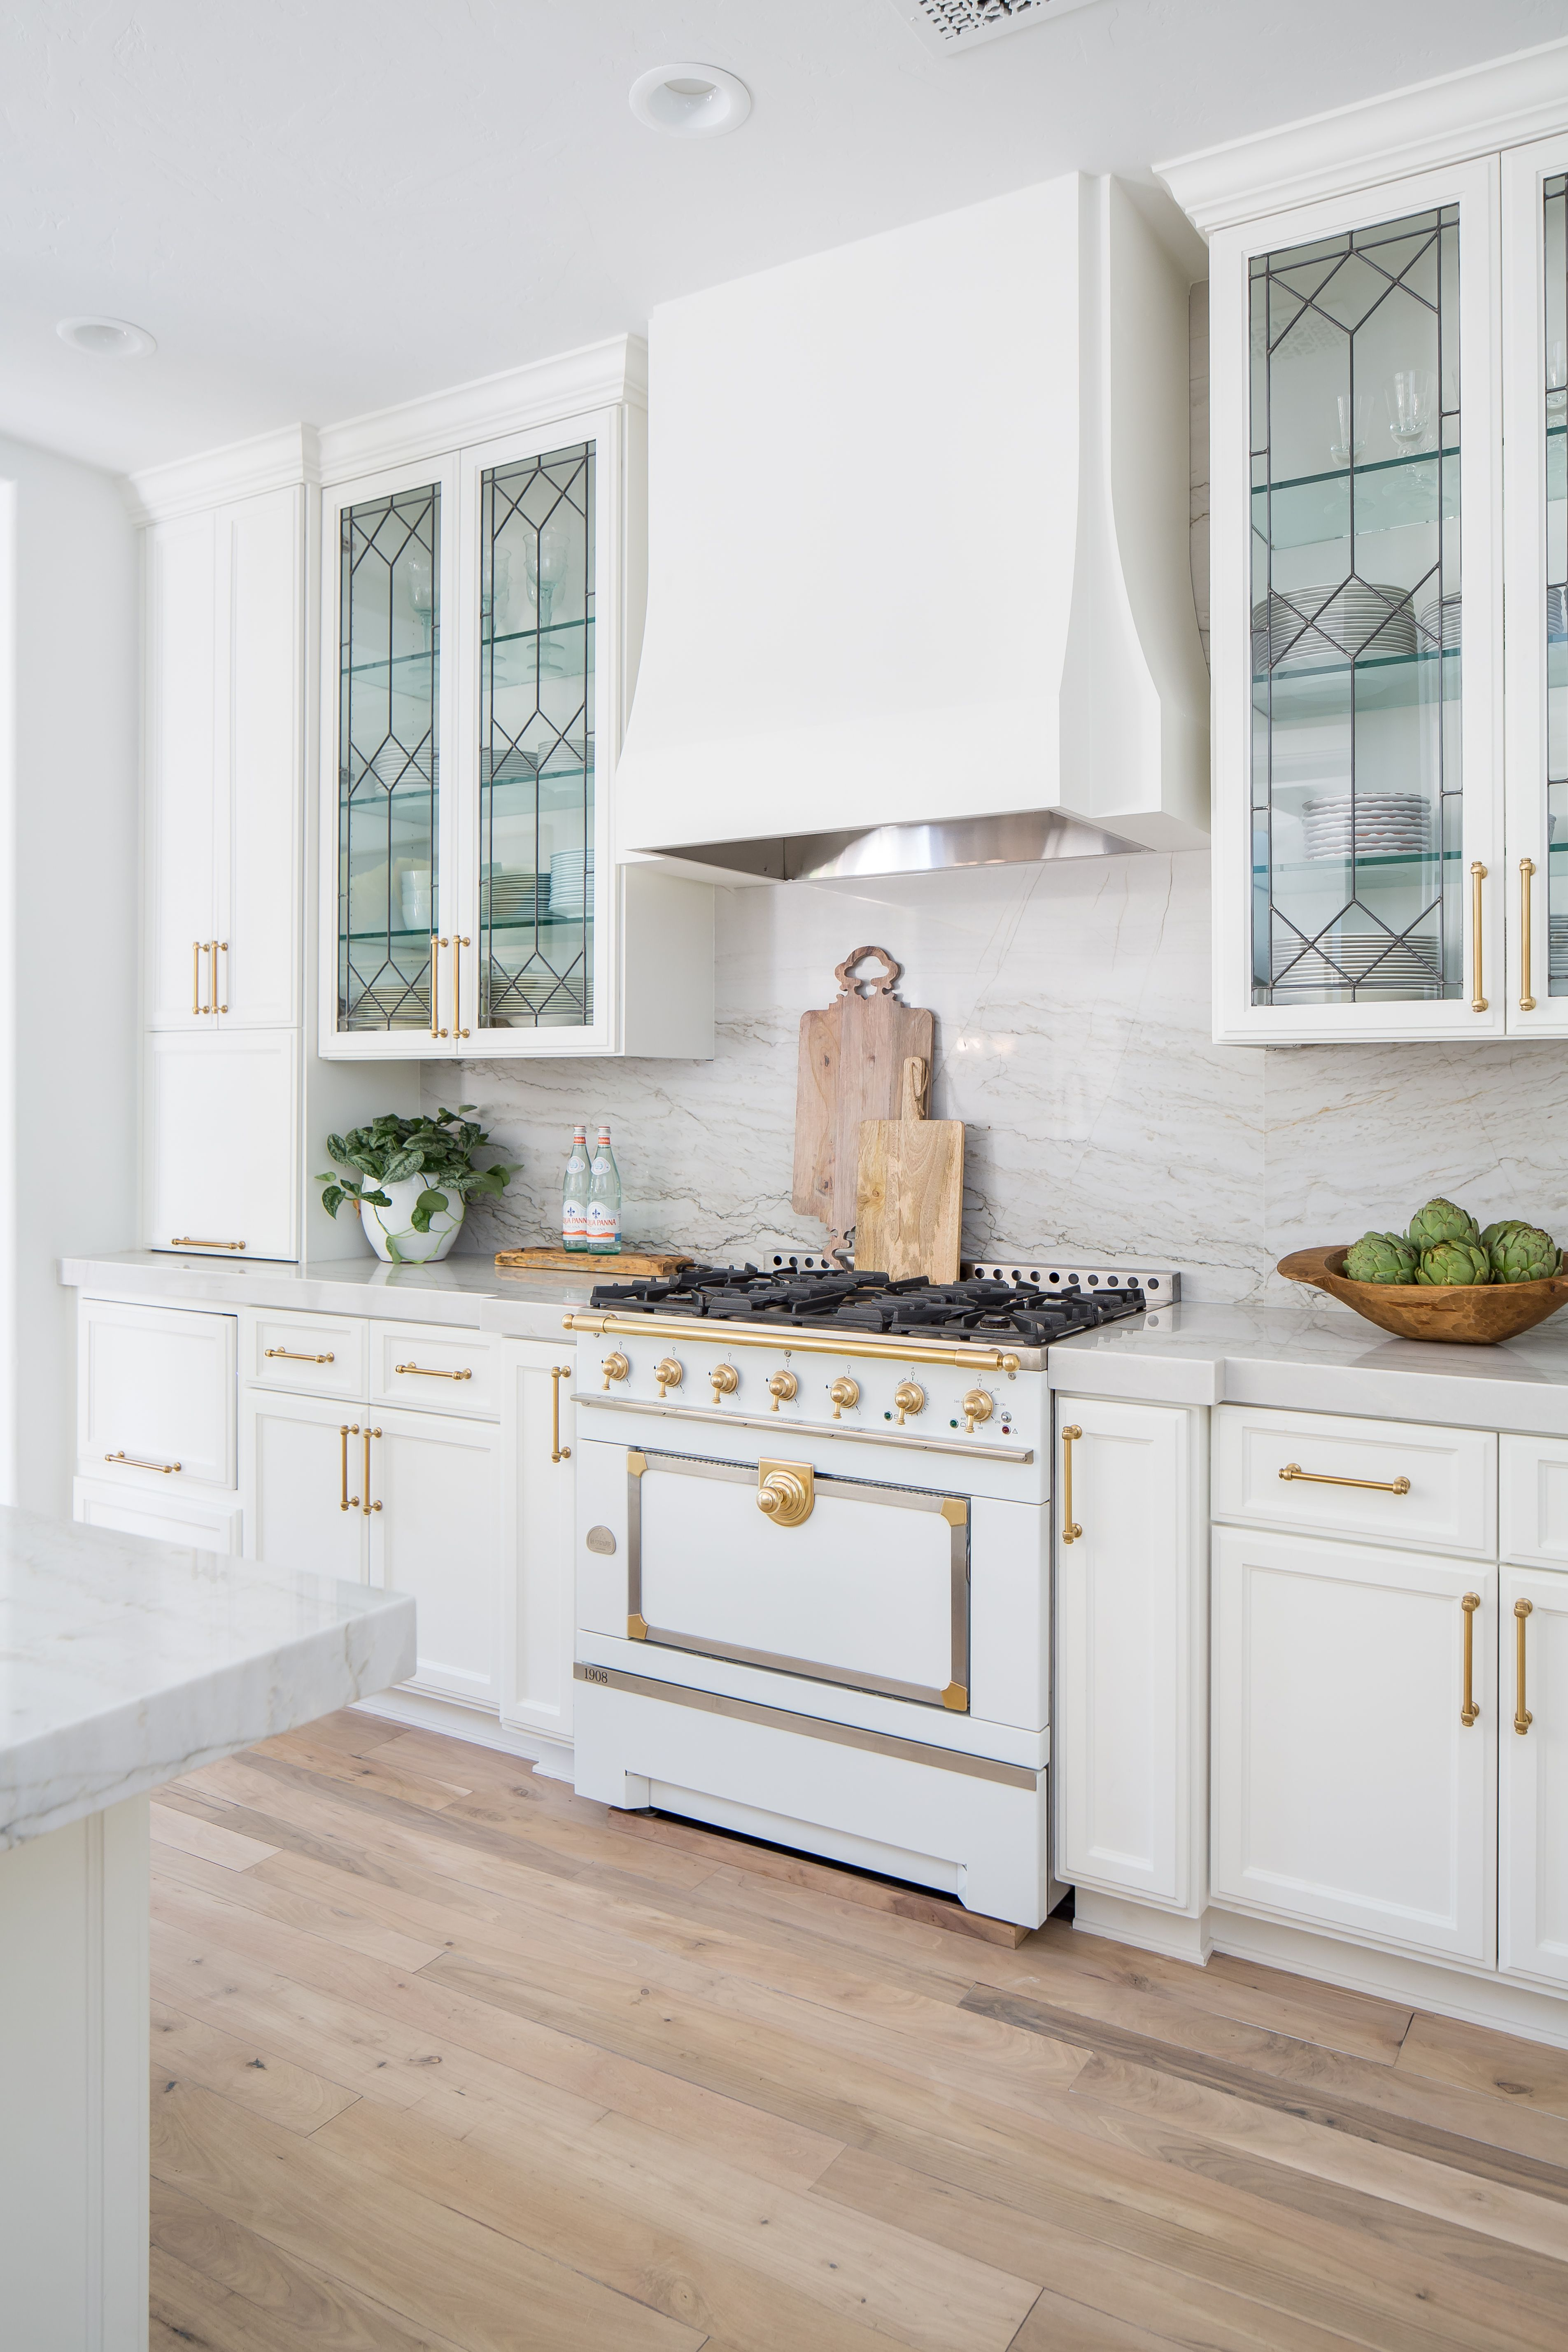 Featuring gold accents, leaded glass and a white La Corue ...